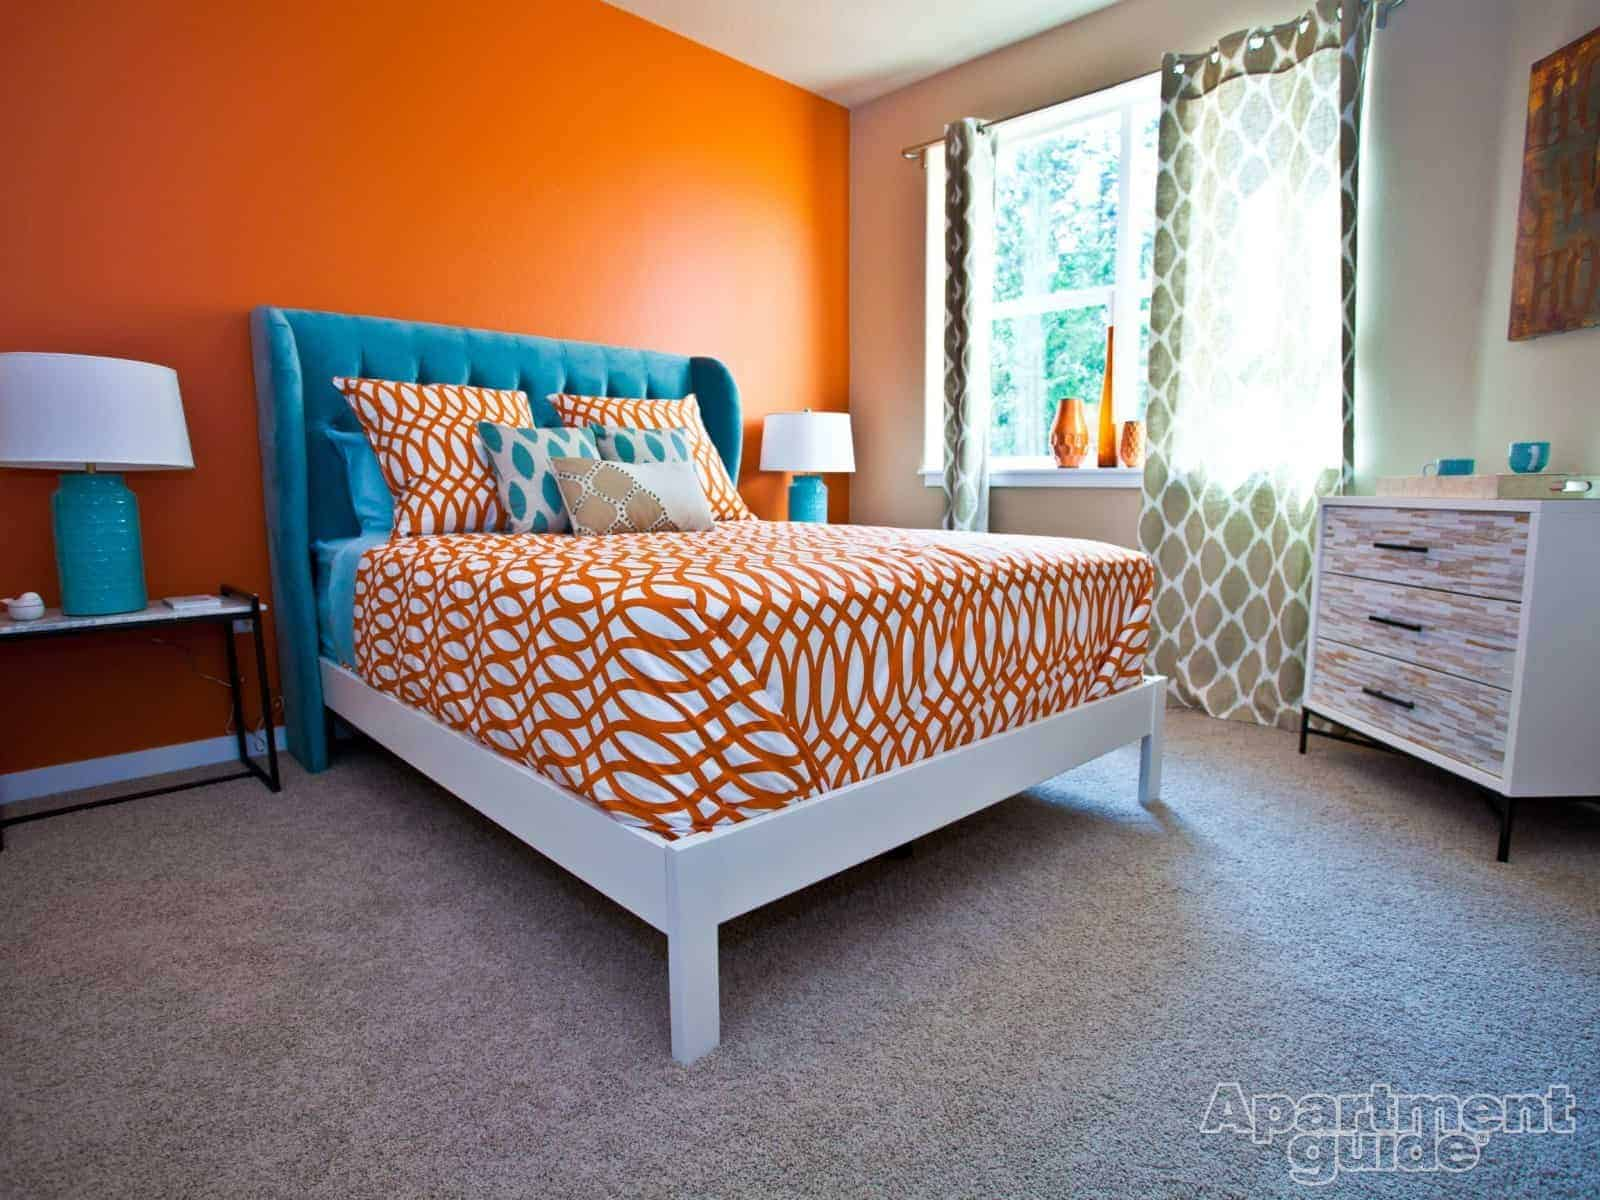 Apartment decor is orange the new black for Apartment accessories